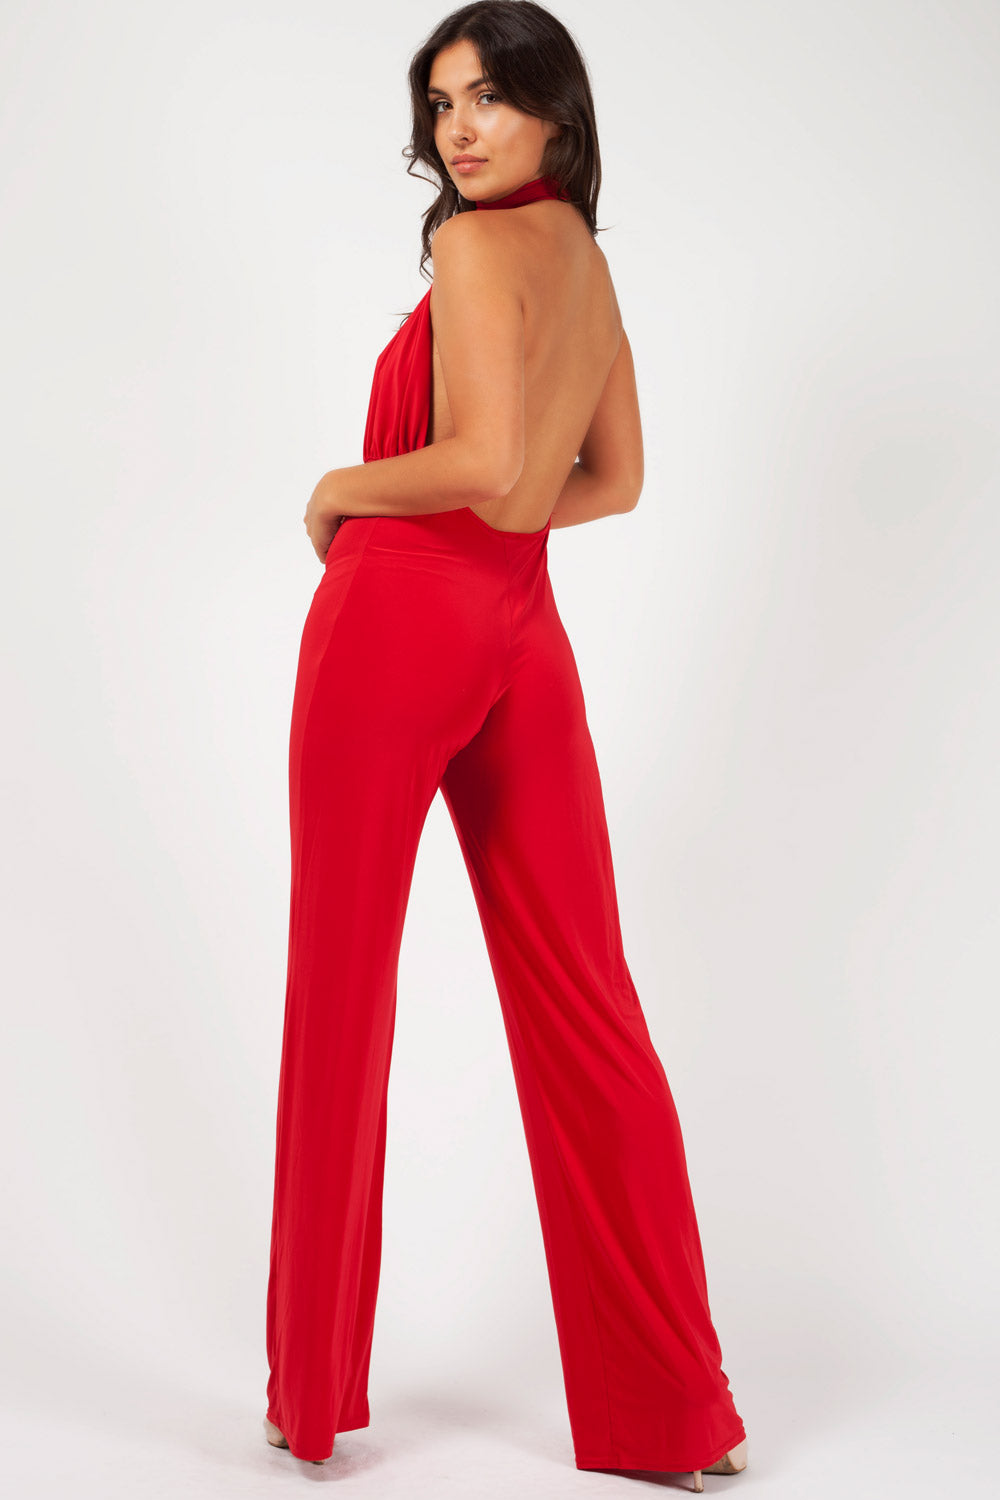 red christmas party jumpsuit outfit